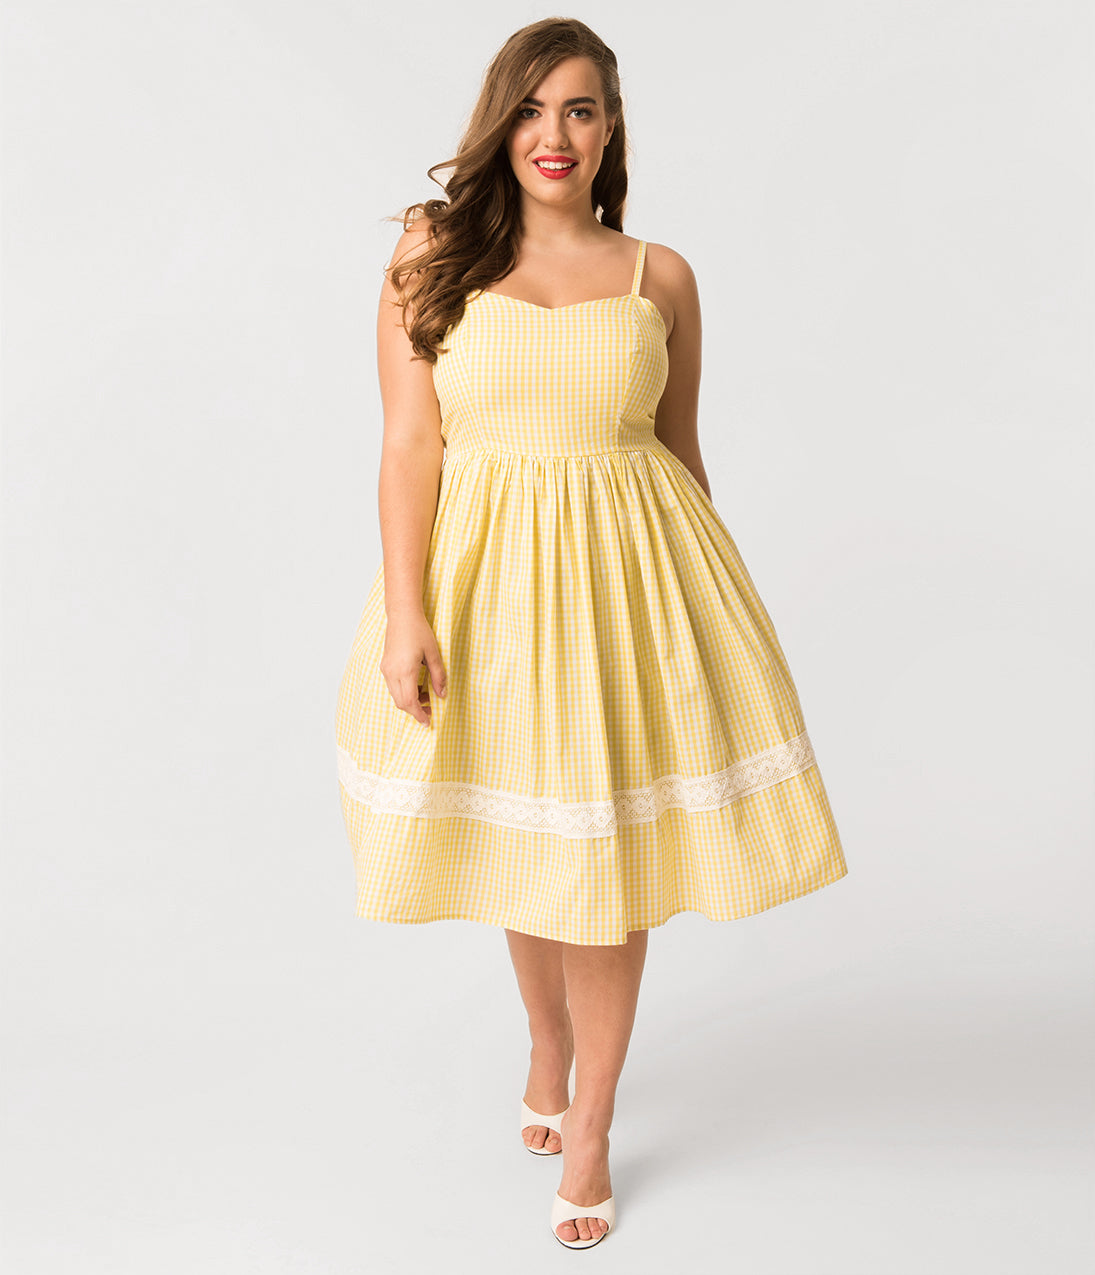 1950s Plus Size Fashion And Clothing History